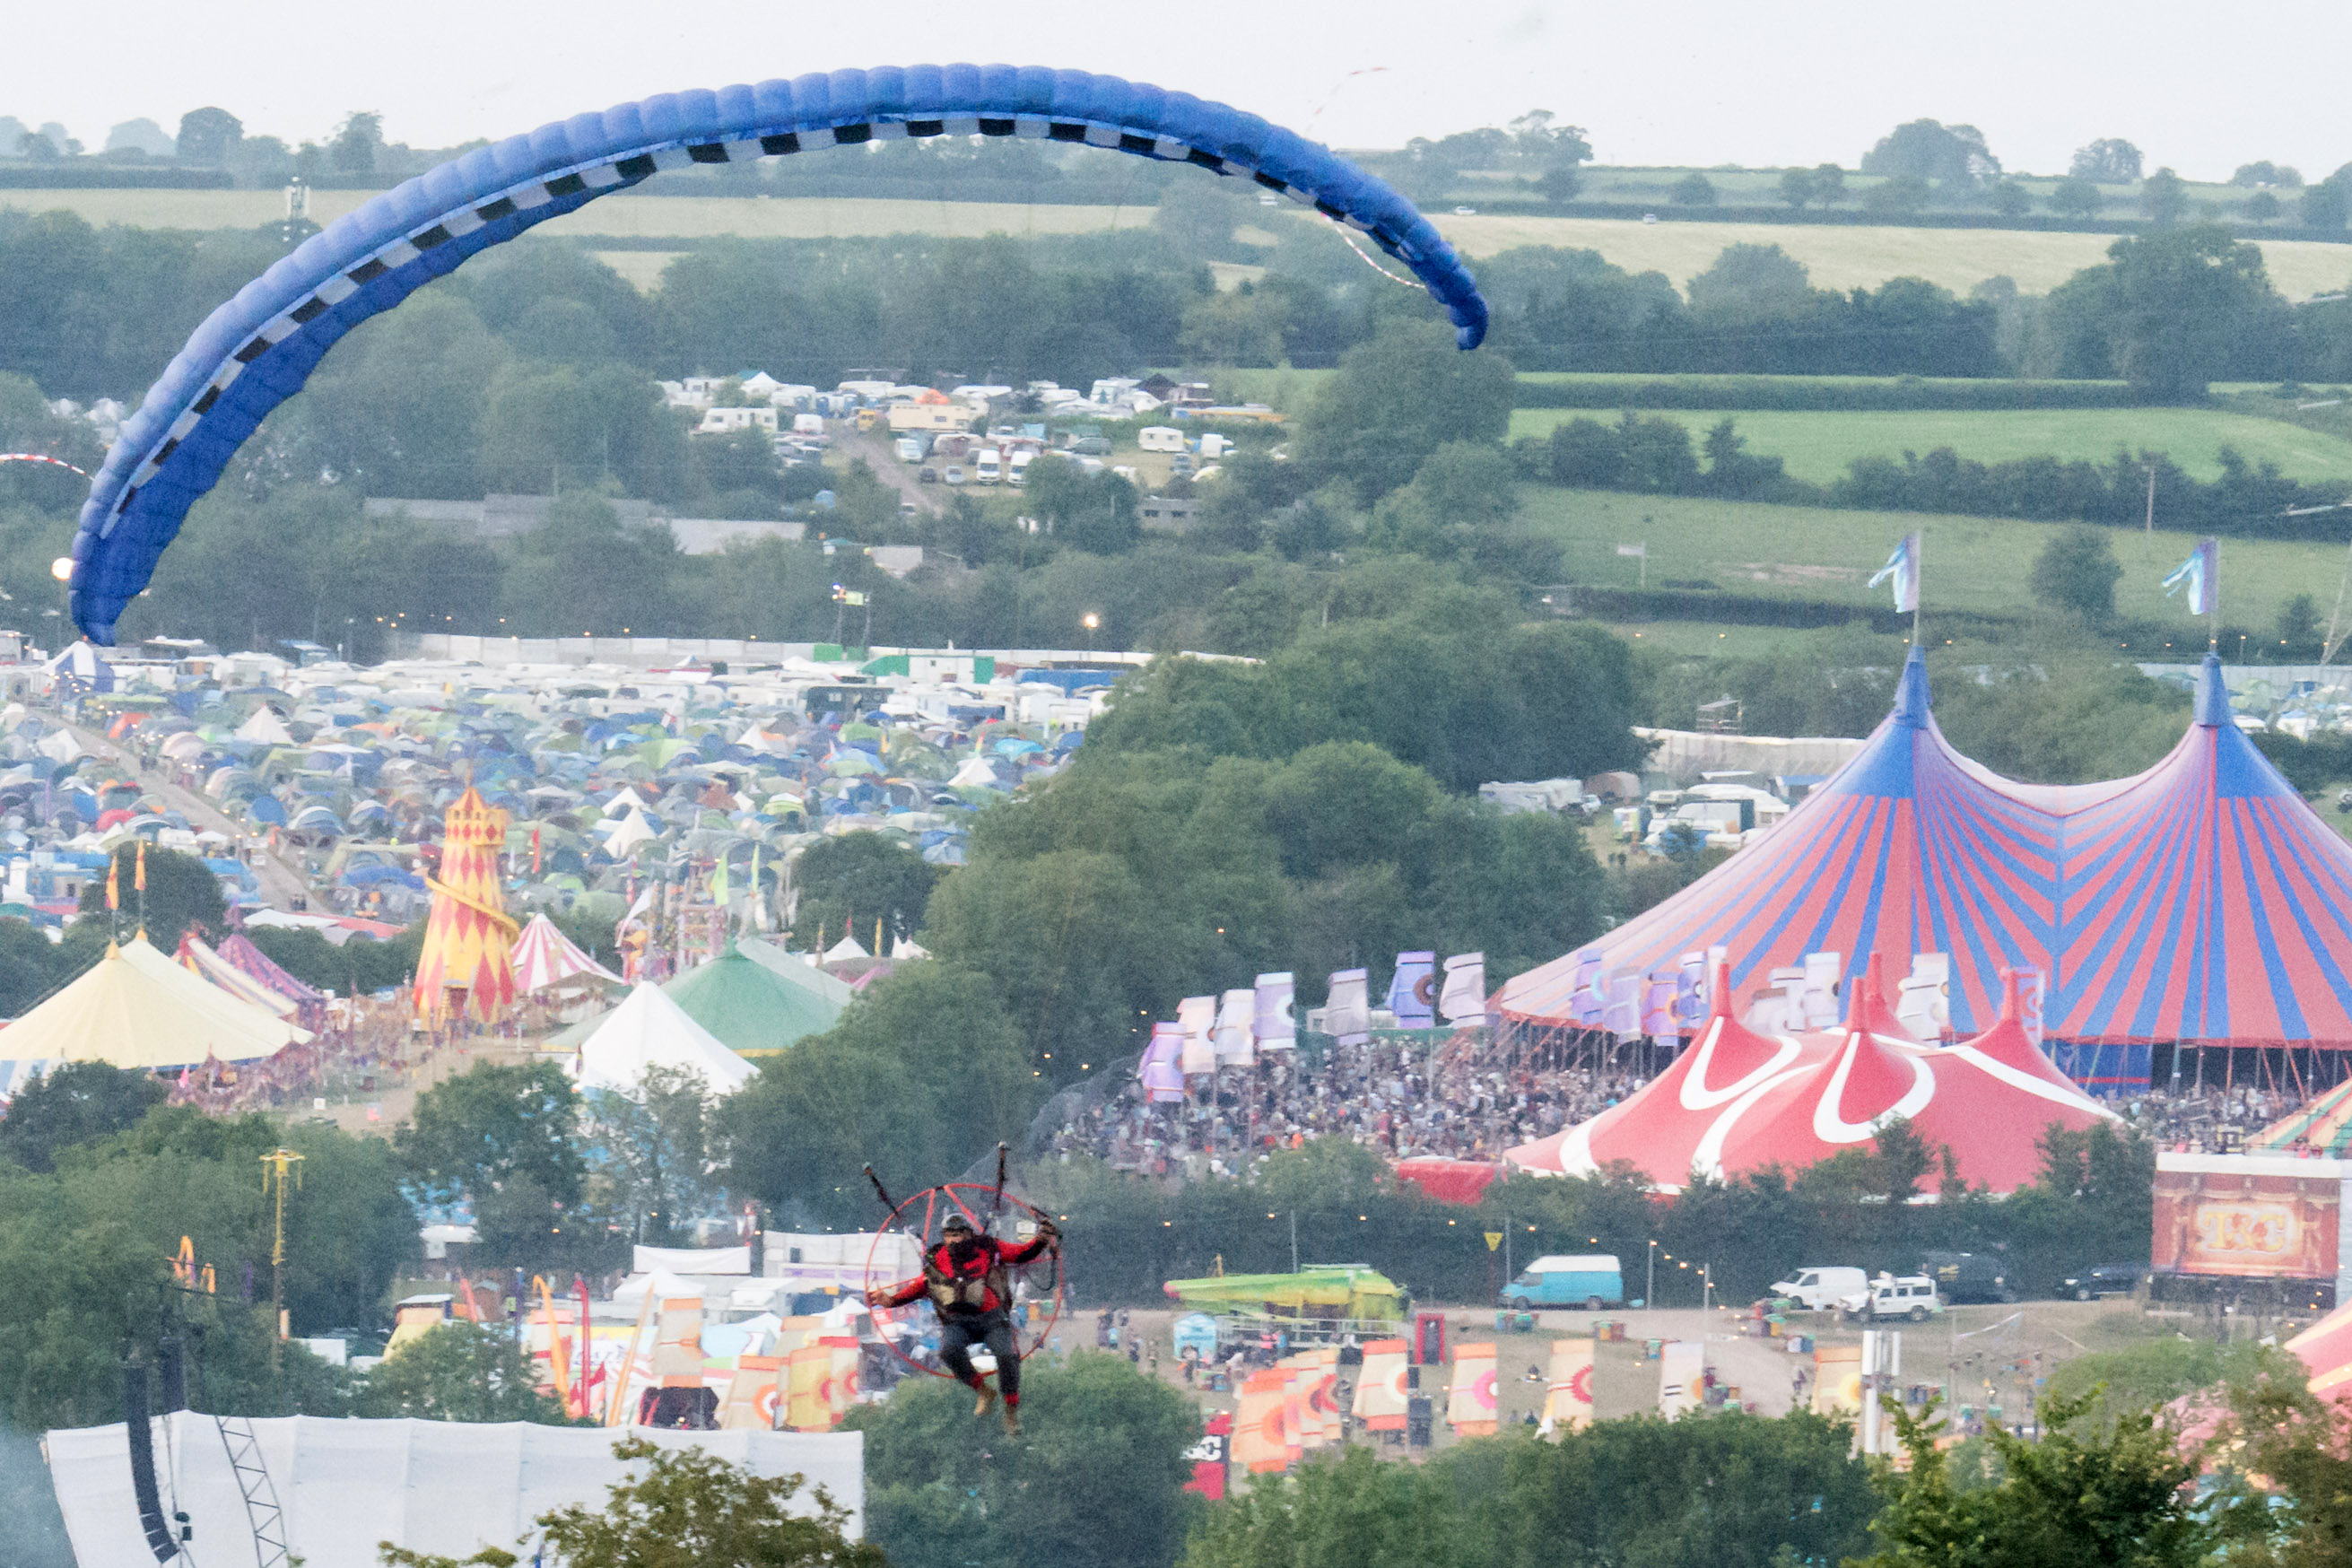 A man attempted to gatecrash the 2015 edition of the festival by flying over the wall in a light propeller-driven motorised aircraft